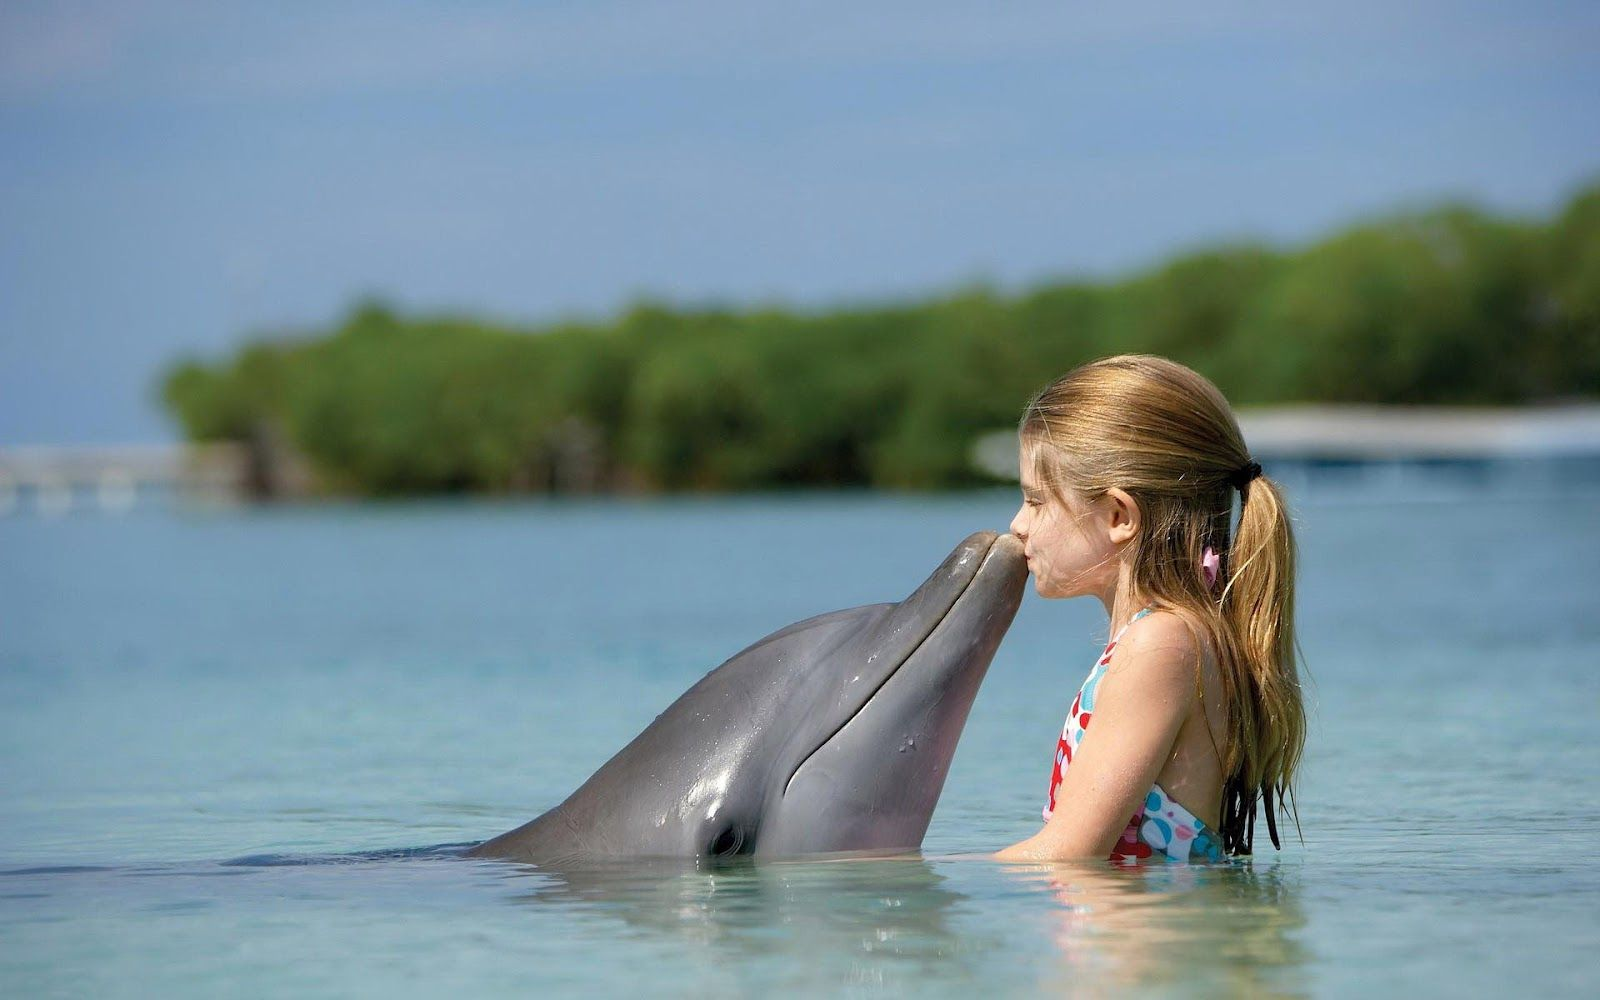 Dolphin Kissing A Little Girl Http Ift Tt 2hfygup Dolphin Images Carnival Cruise Animal Wallpaper